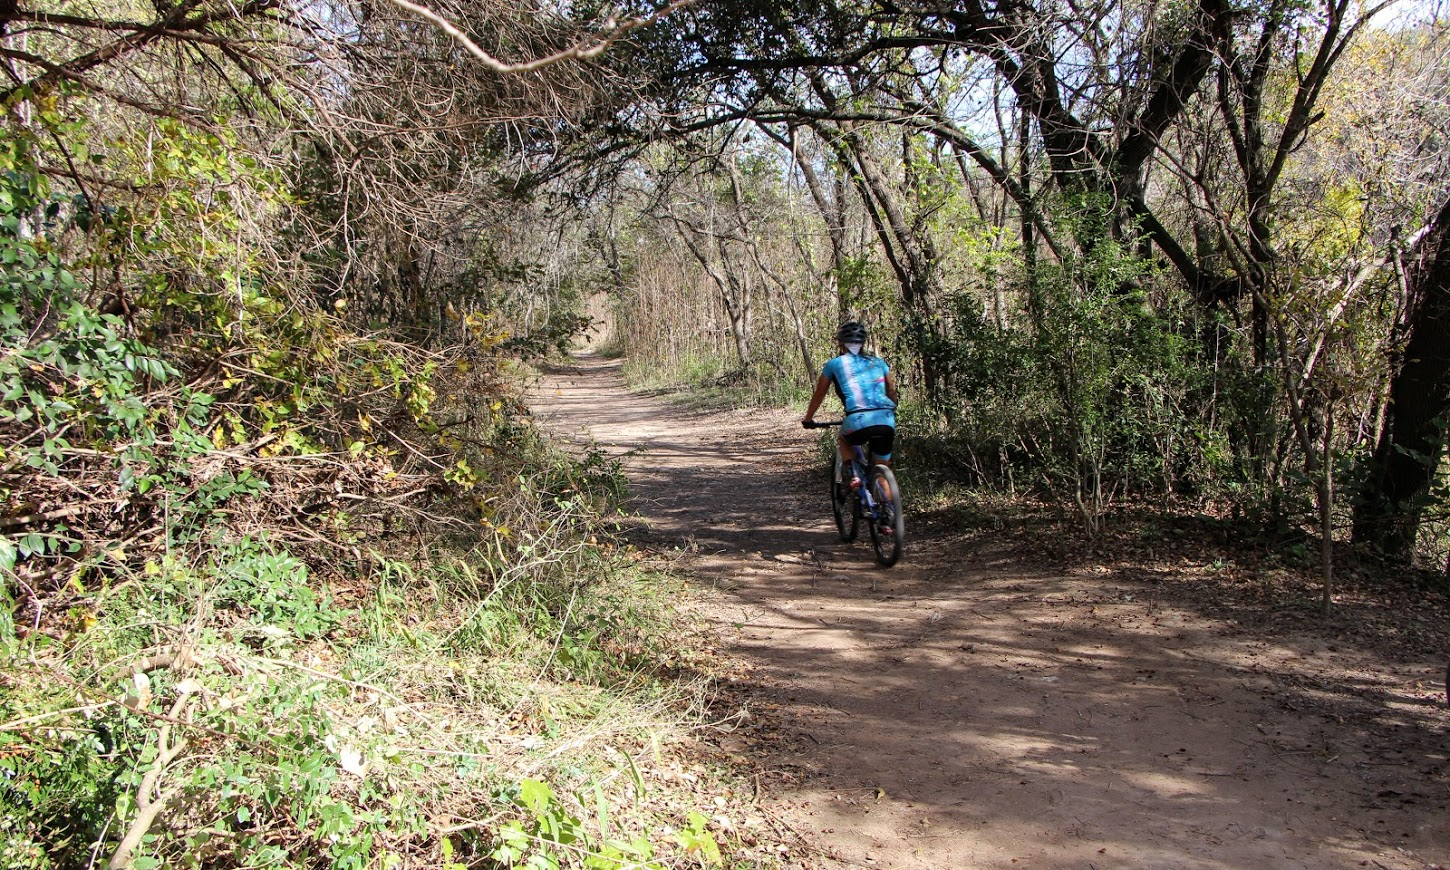 Barton Creek Greenbelt: How to Bike Austin's Most Por MTB Trail on enchanted rock trail map, barton springs trail map, barton creek greenbelt trail map, mountainous islands on an old map, red rocks amphitheatre trail map, texas trail map, austin map, houston trail map, li greenbelt trail map, town lake trail map, briones trail map, lake georgetown trail map, lady bird lake trail map, san marcos trail map, walnut creek trail map, mckinney falls state park trail map, barton springs tx map, united states trail map, short springs trail map, beaumont trail map,